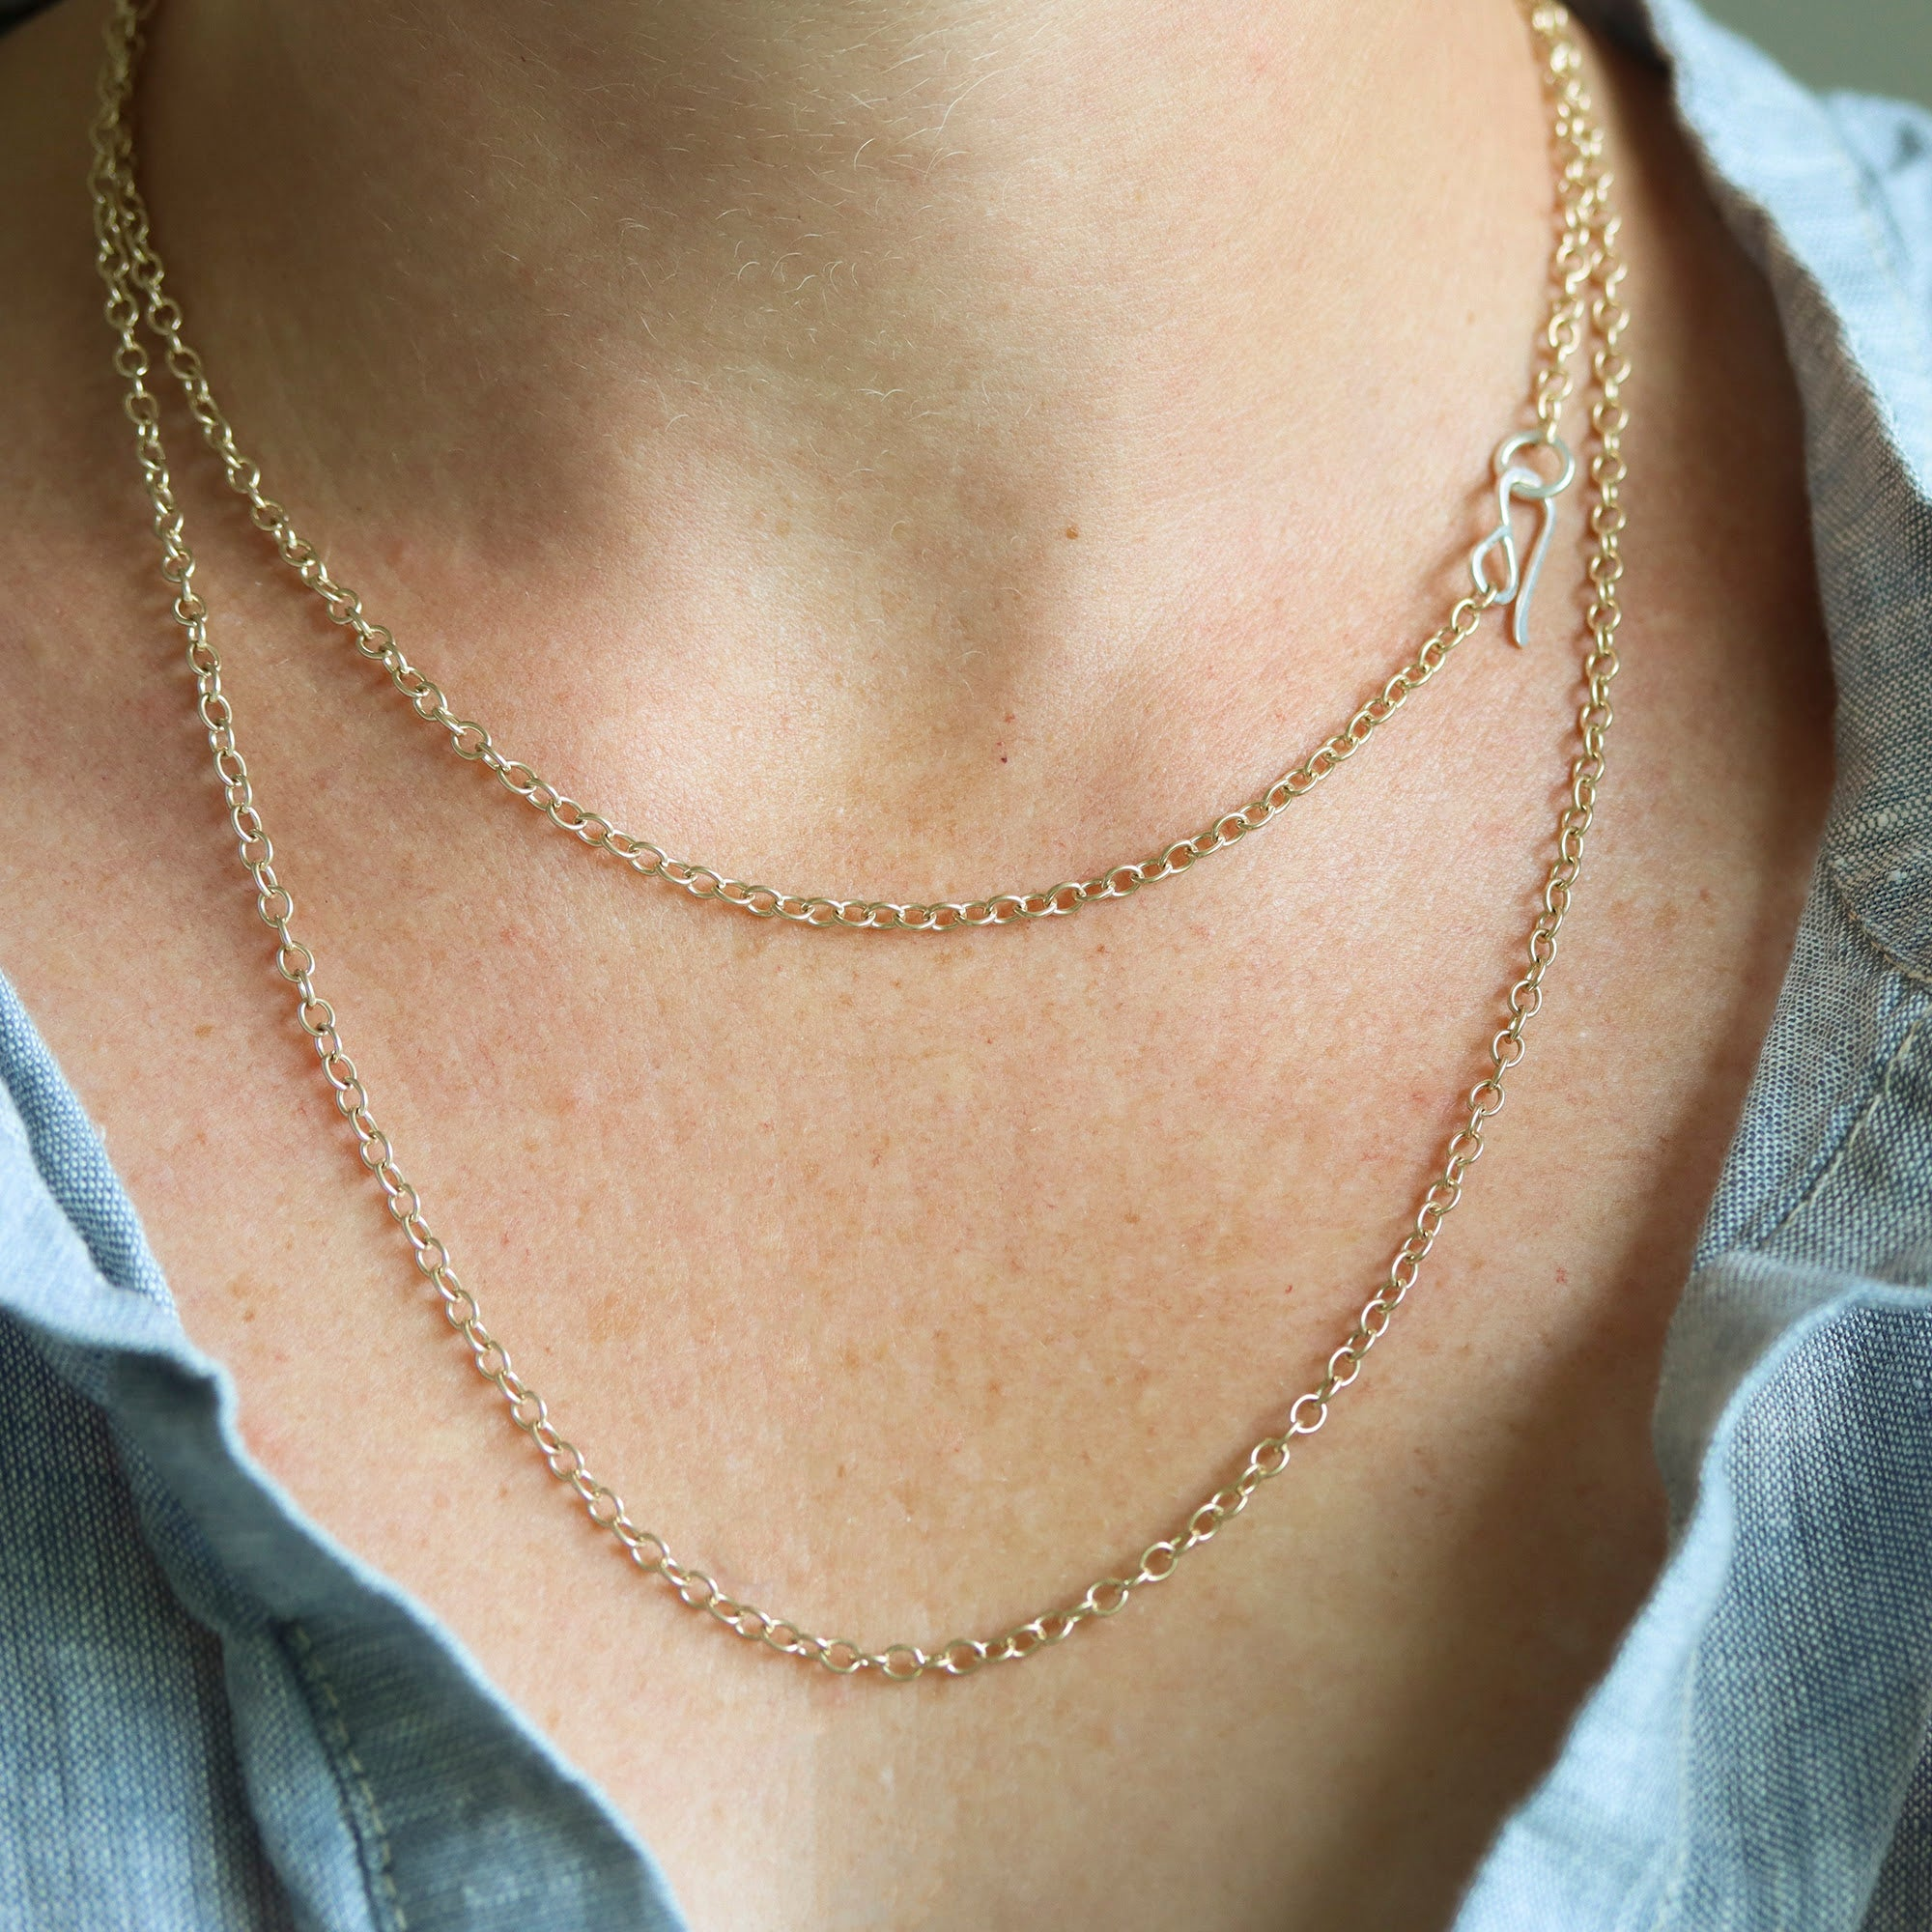 Rebecca Haas Jewelry - Private Shopping Event Necklace